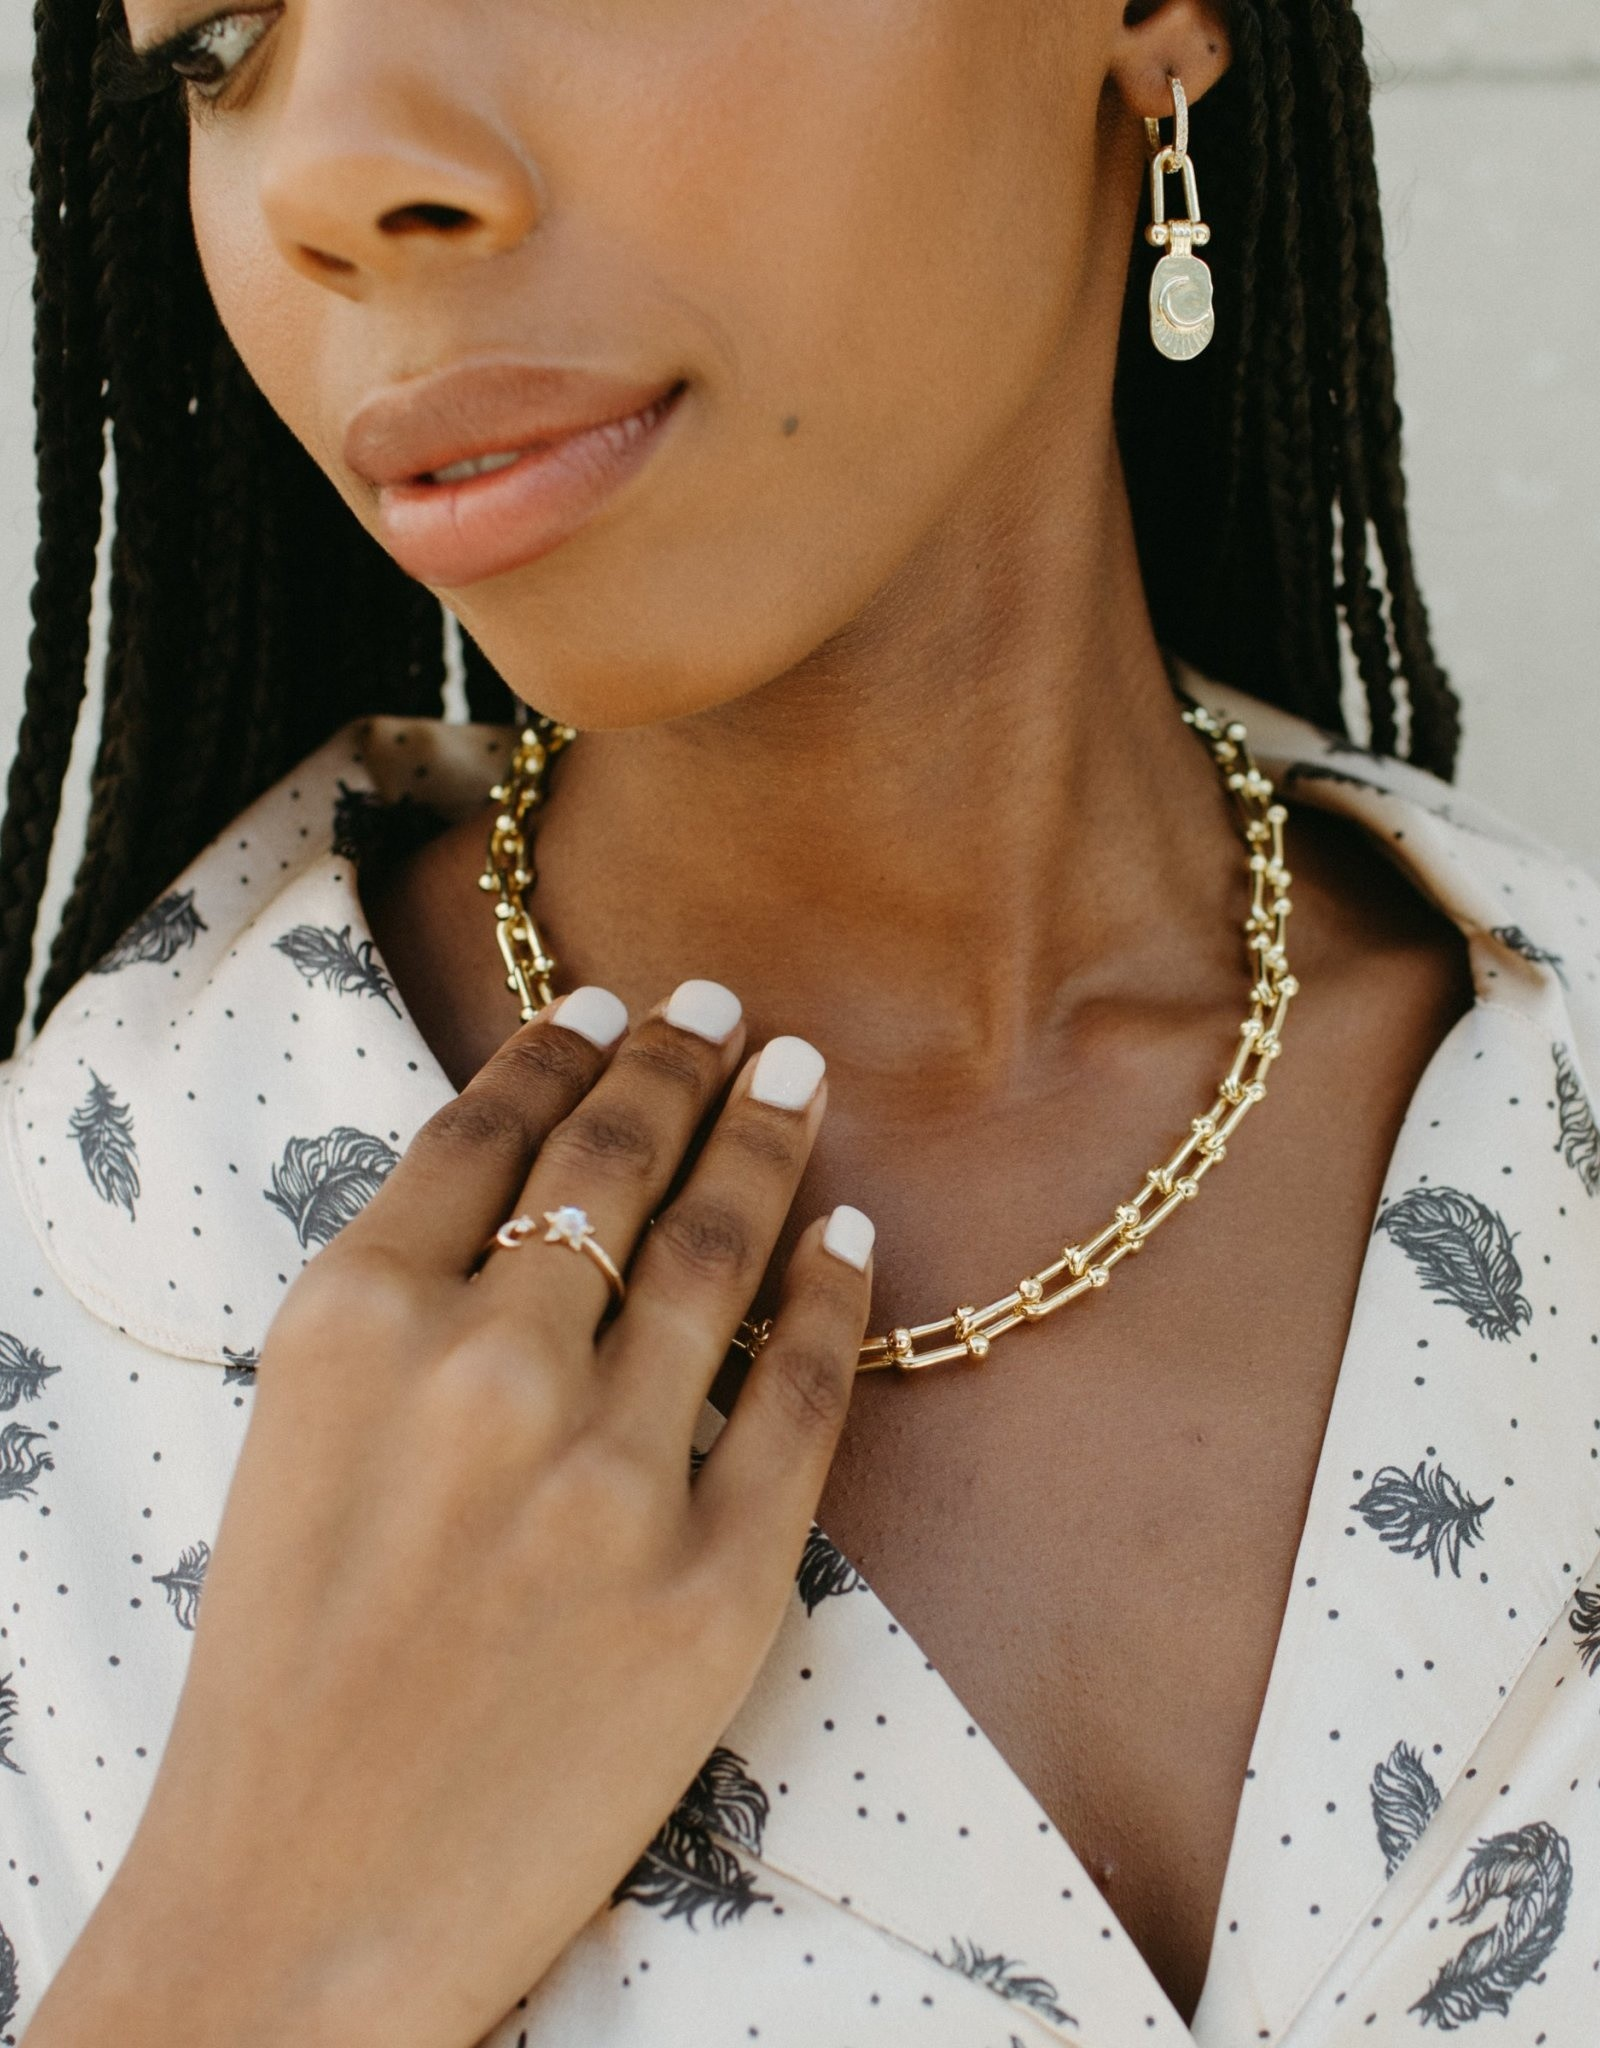 UNCVRD UNCVRD Gioia Necklace